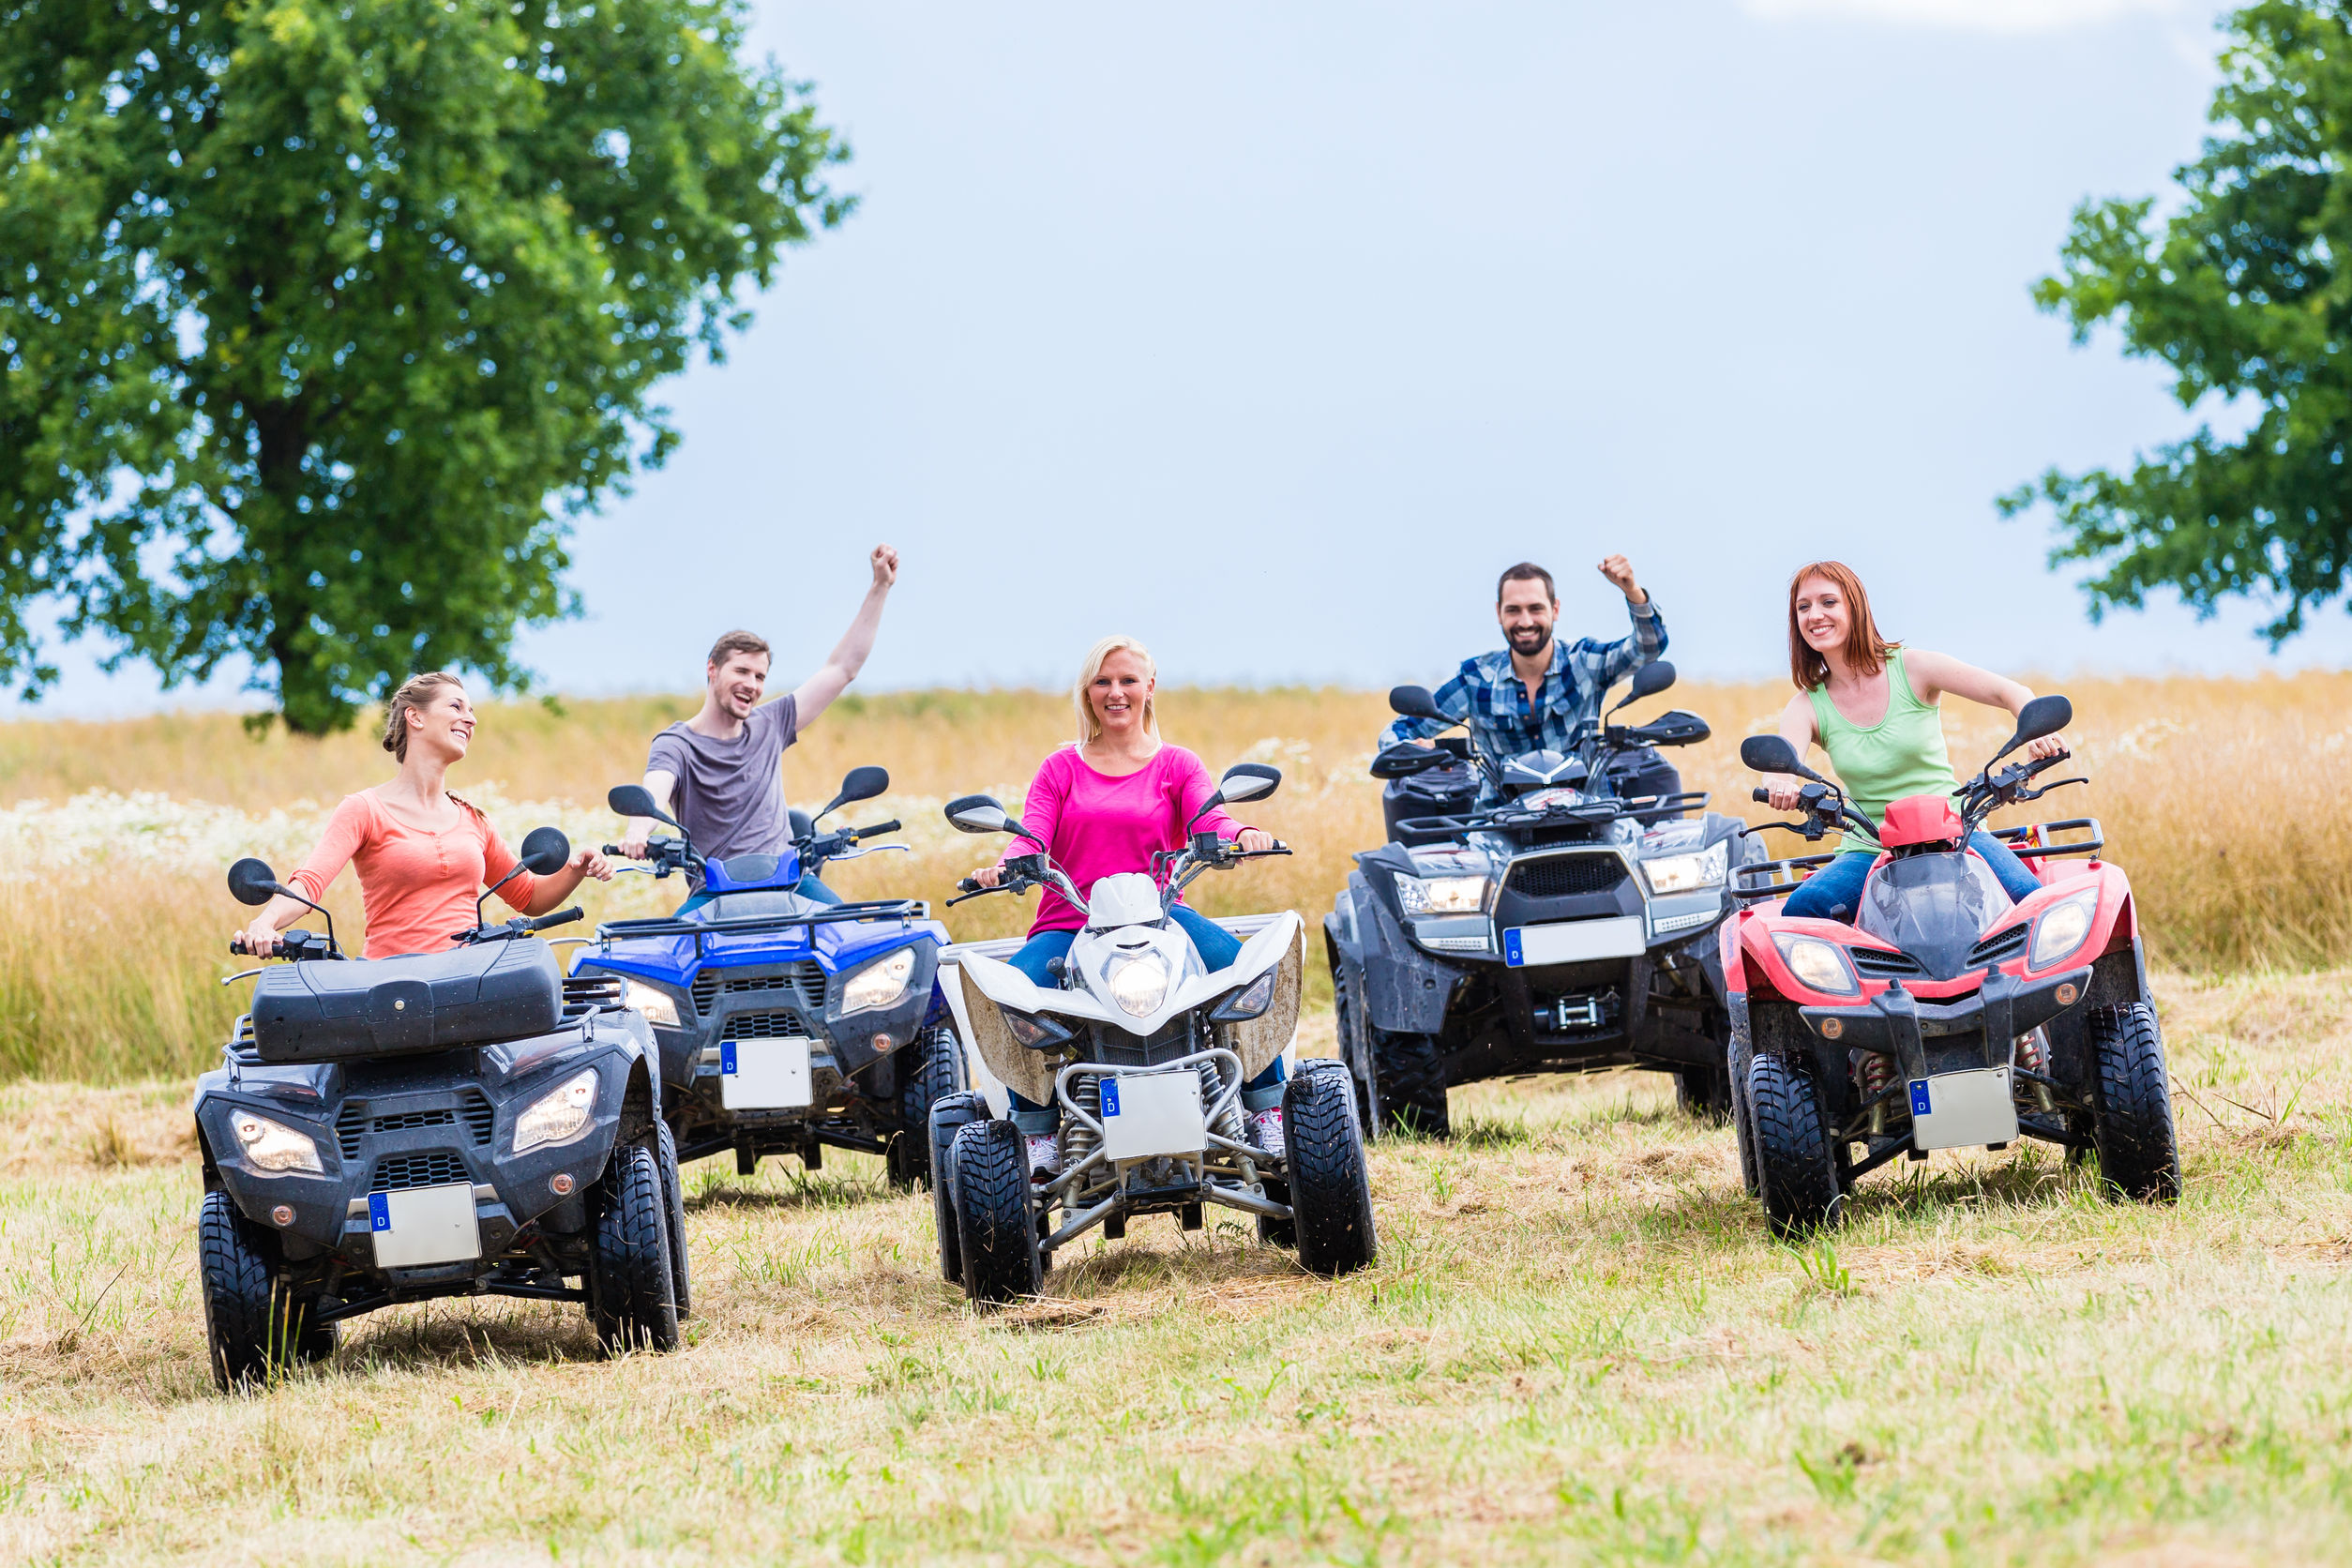 Finger Lakes ATV Insurance